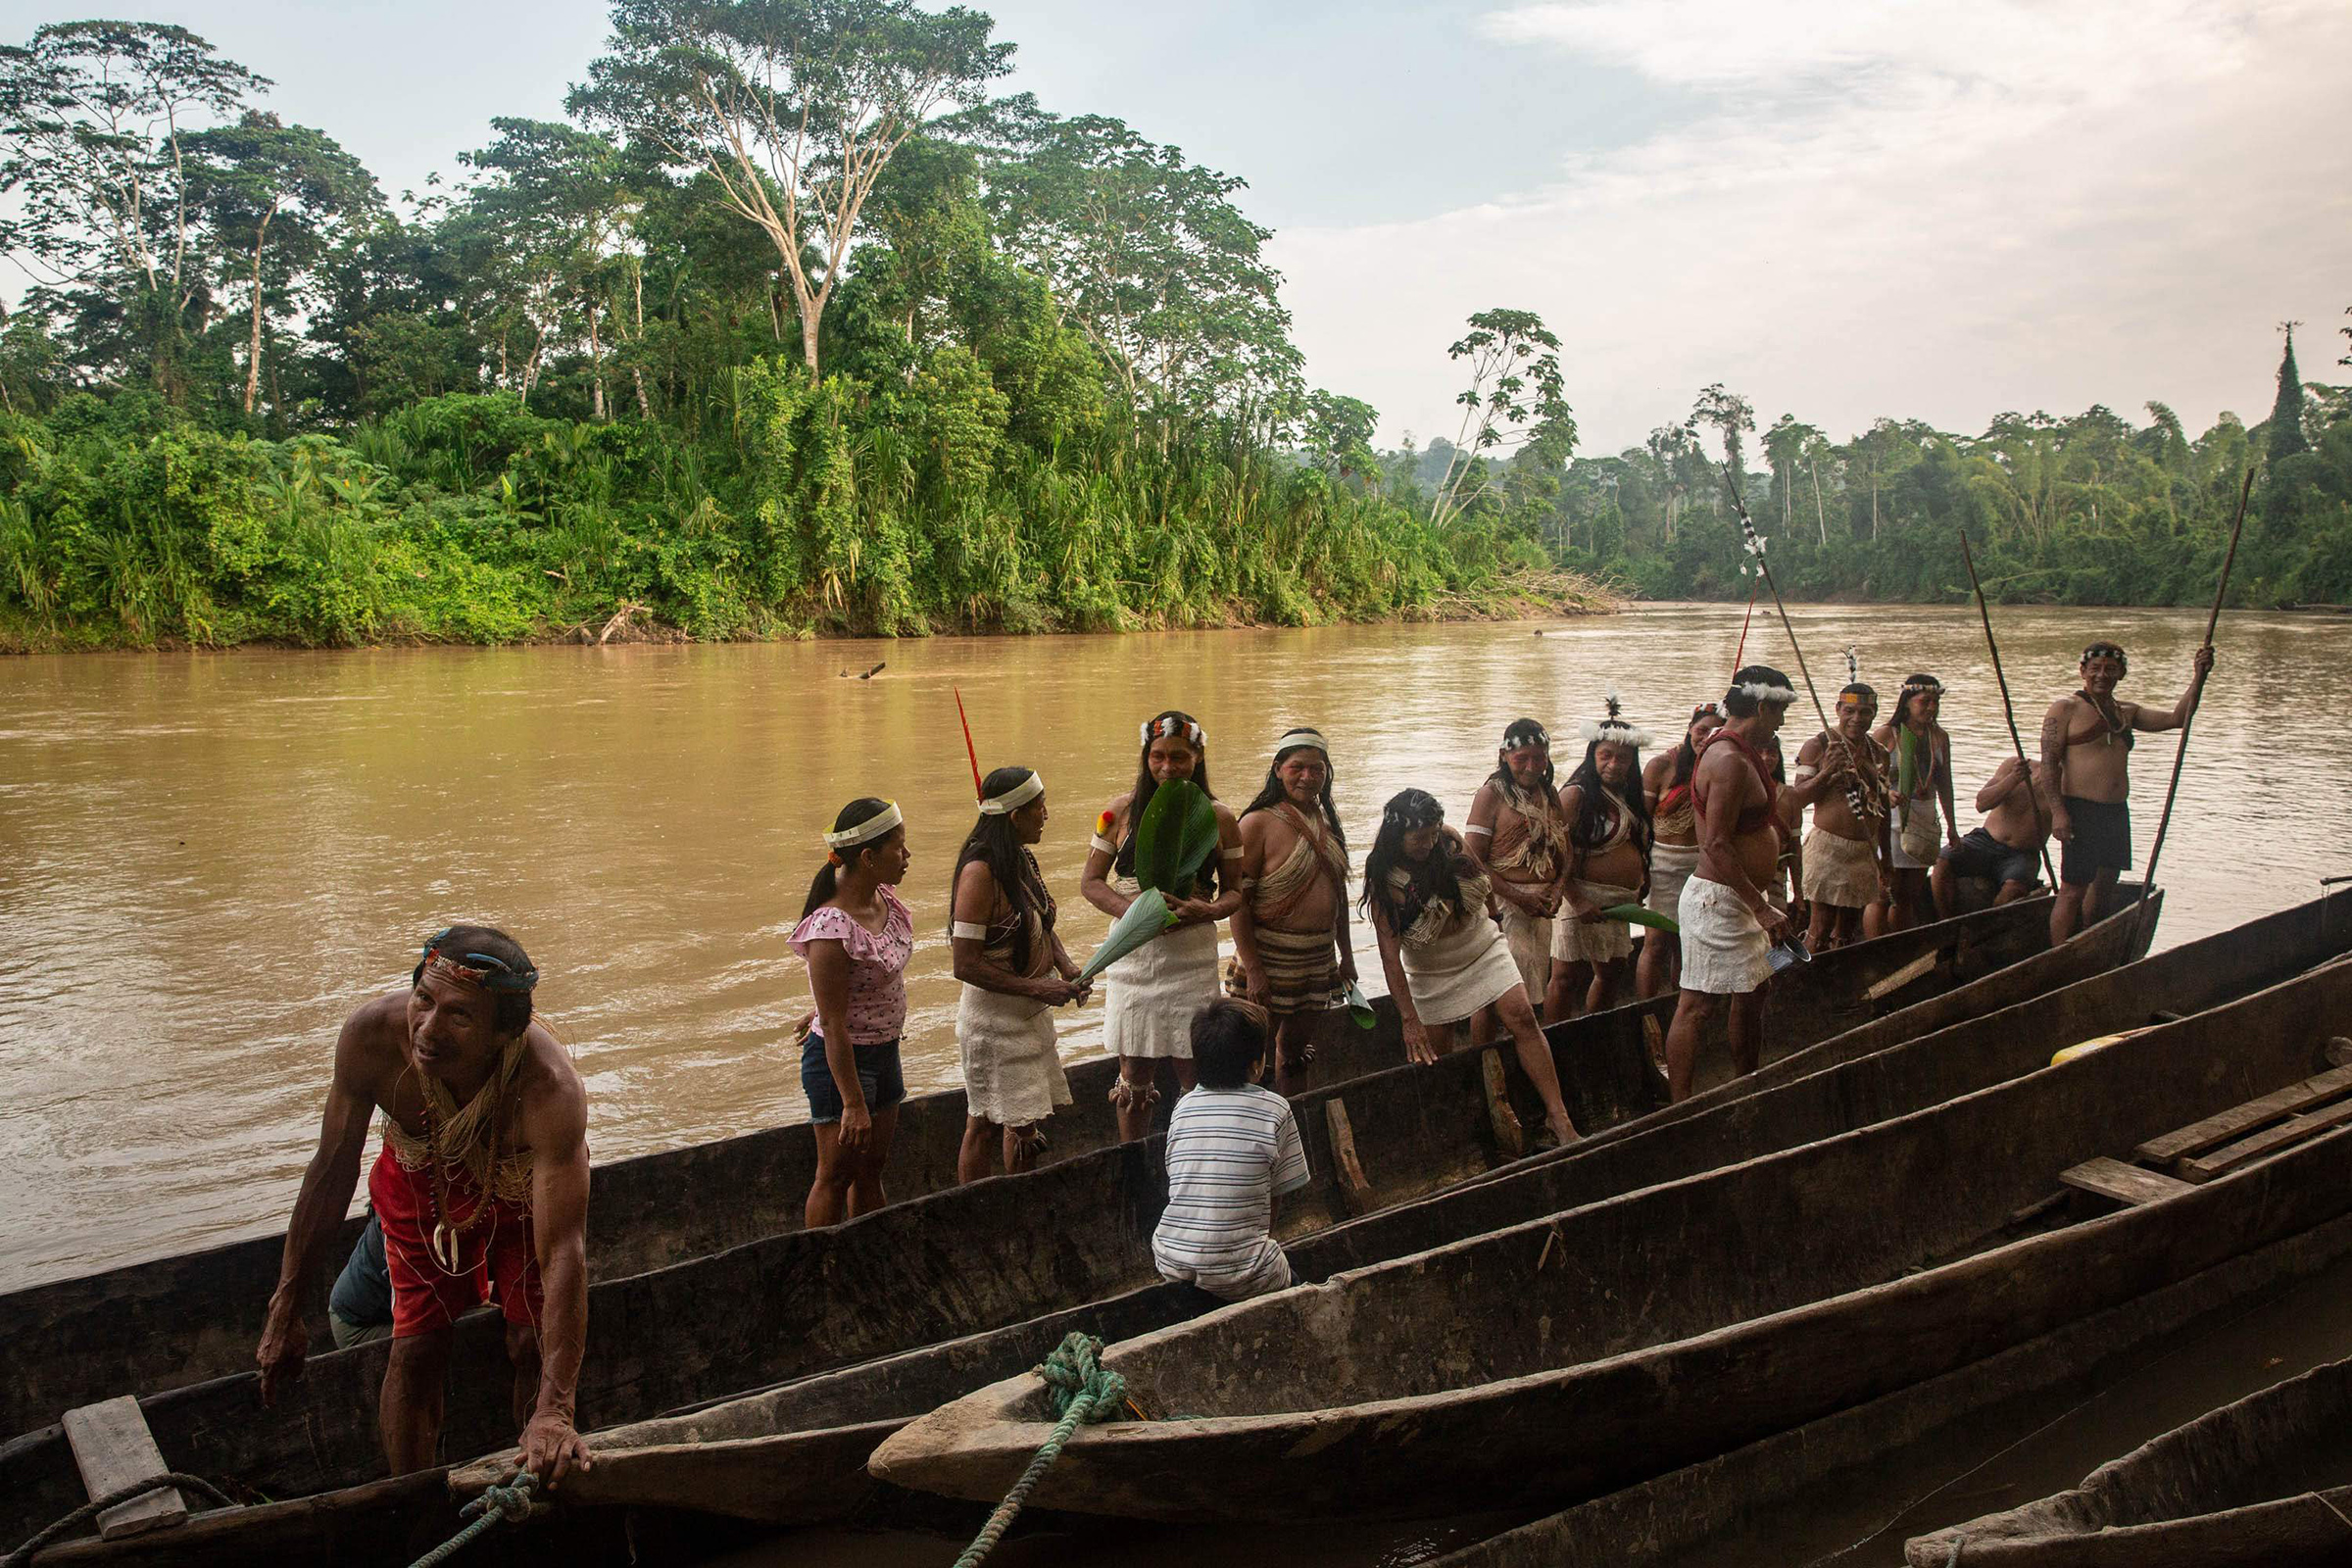 Waorani people embark on a canoe journey along the Curaray river in ancestral Waorani territory, Ecuadorian Amazon, in March.